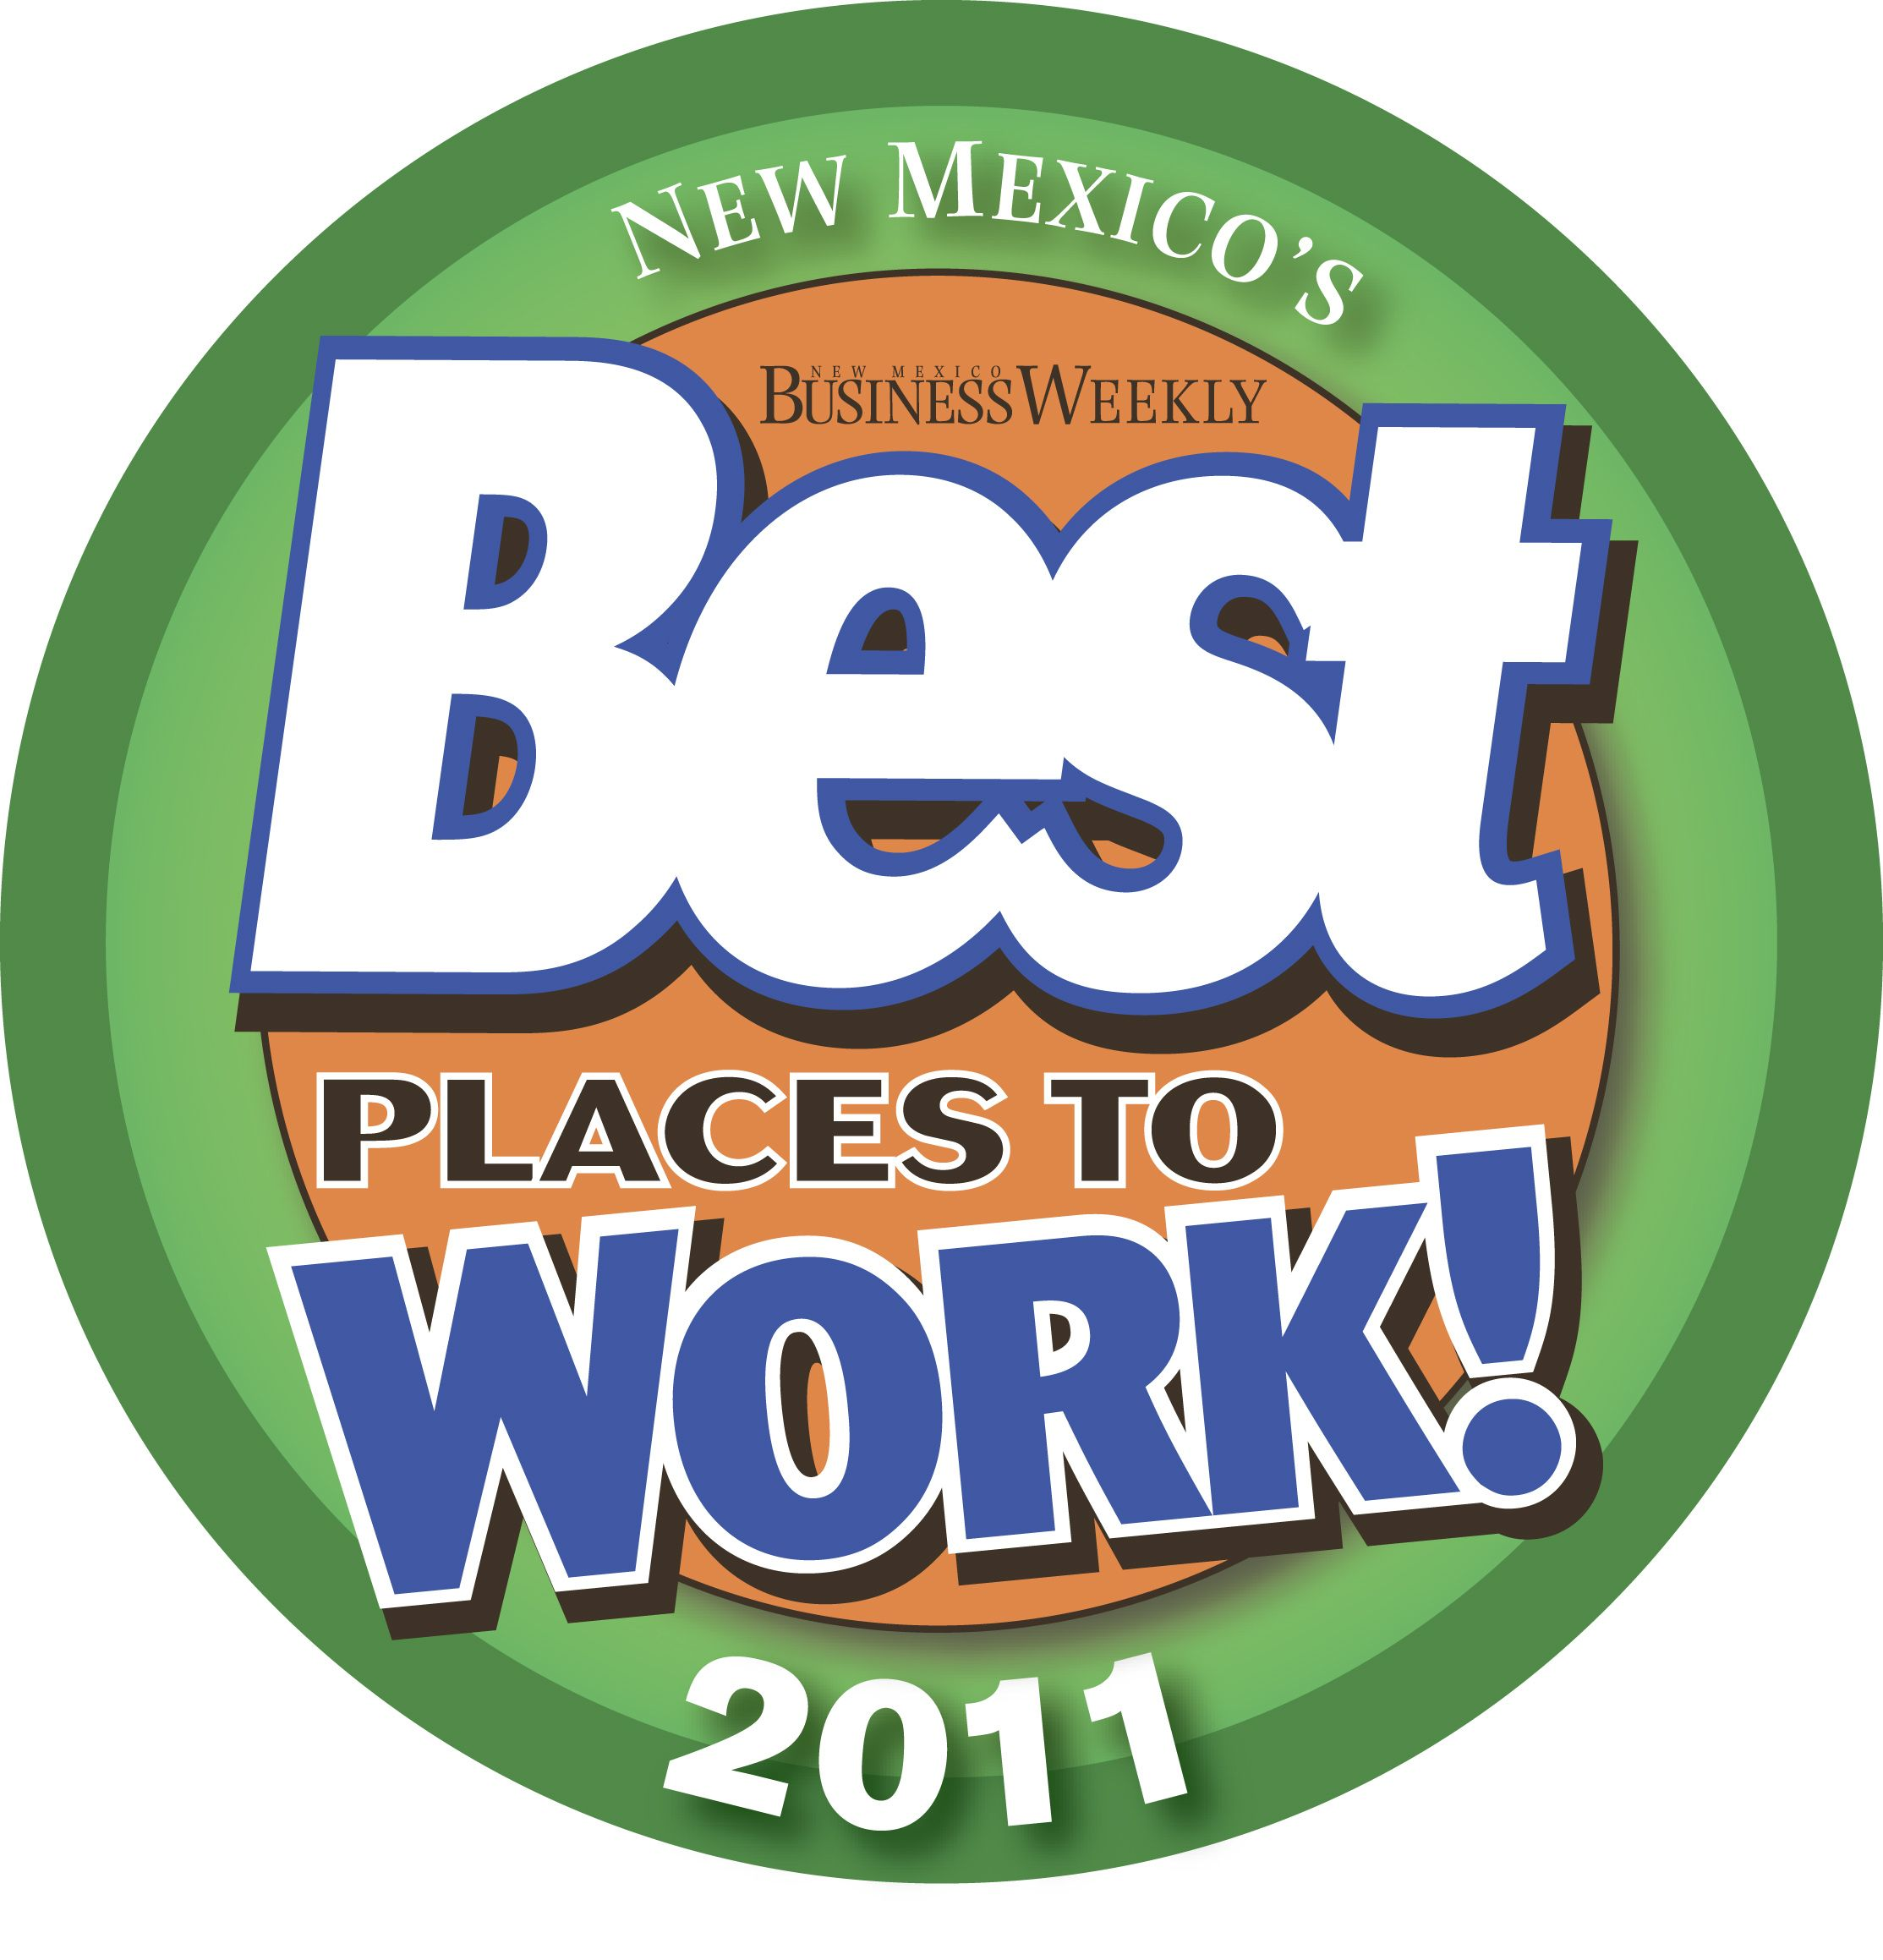 Best_Places_to_Work_2011_16.02.29